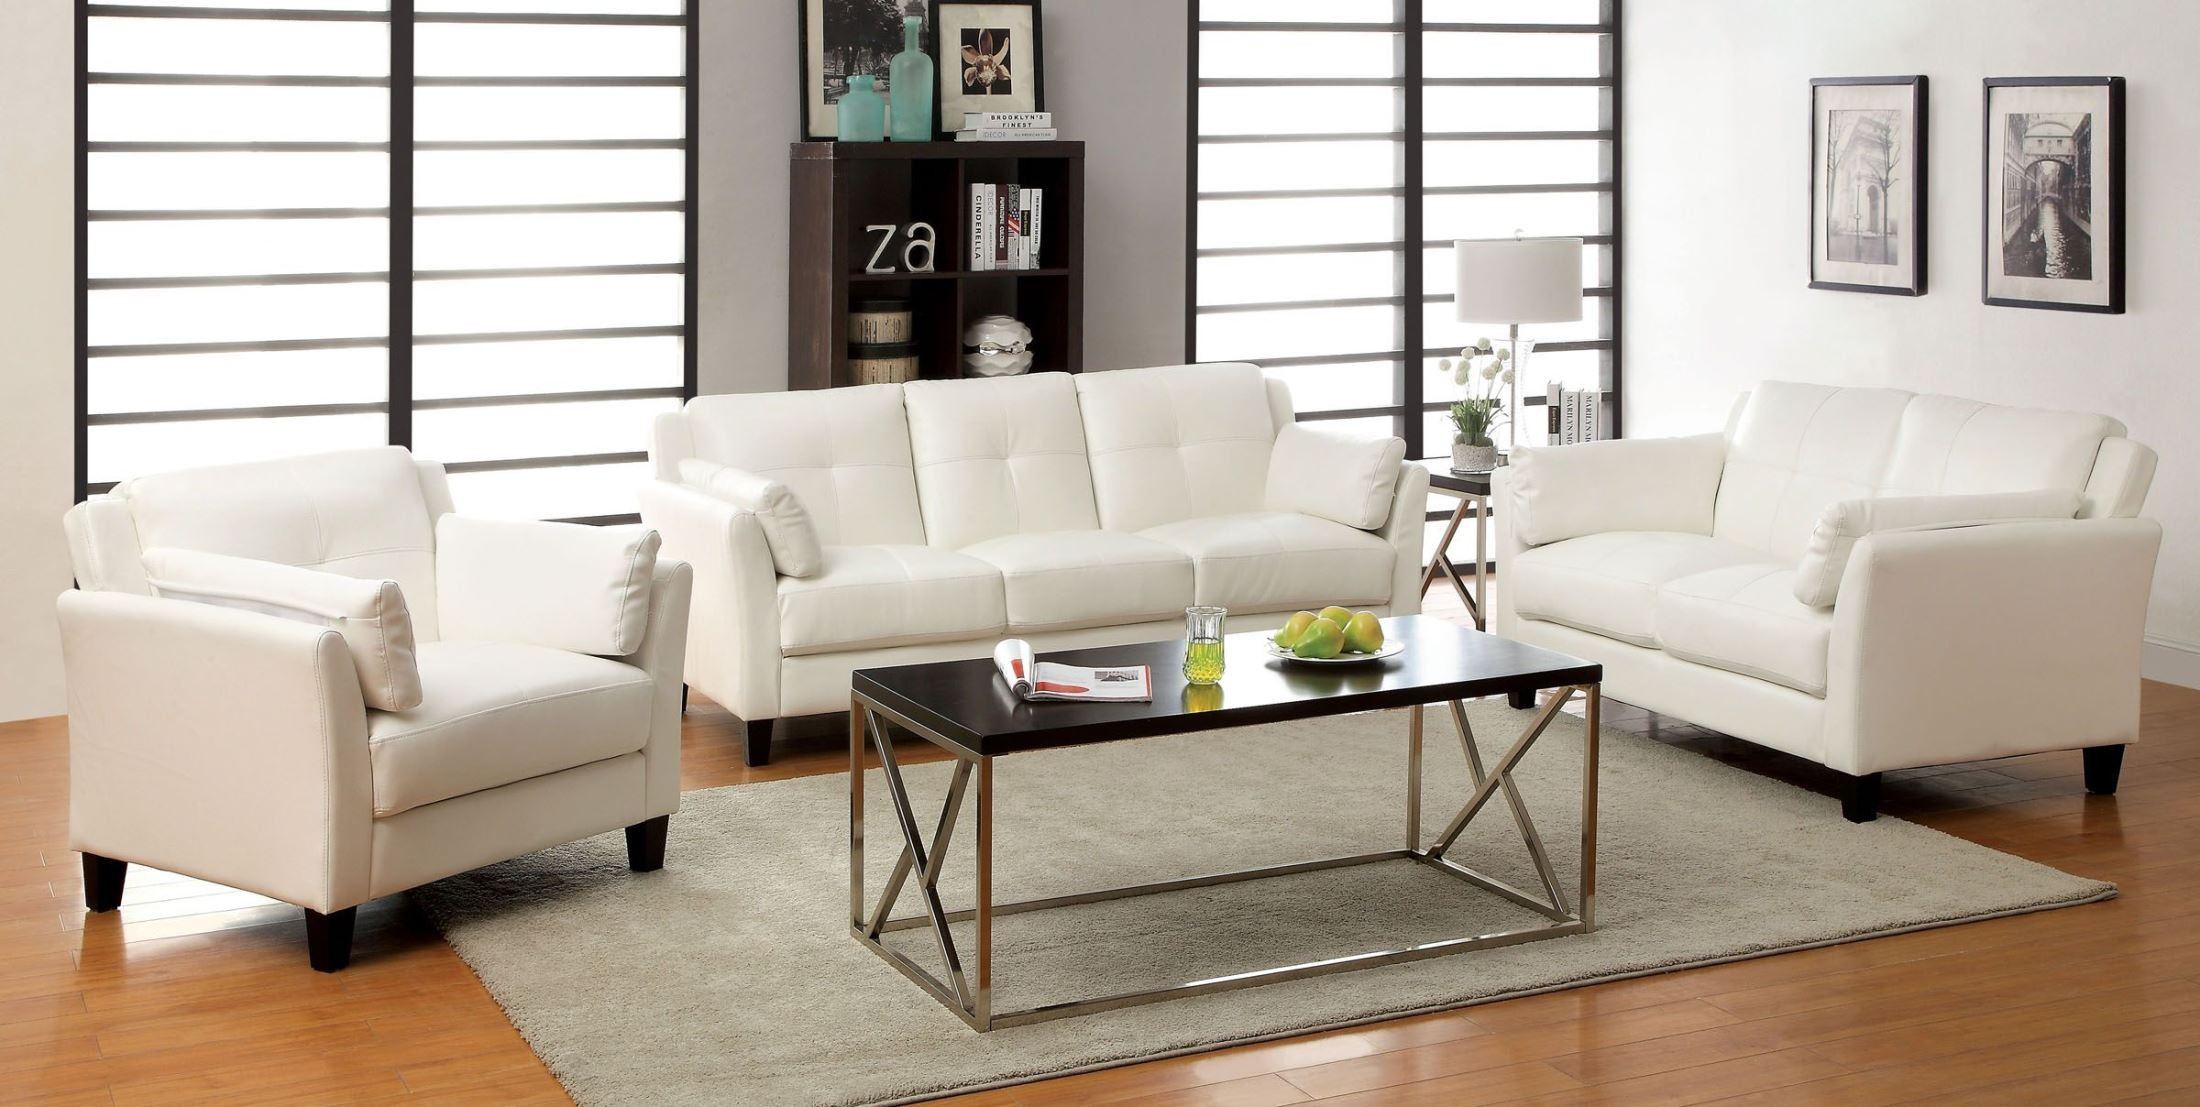 furniture of america living room pierre white living room set from furniture of america